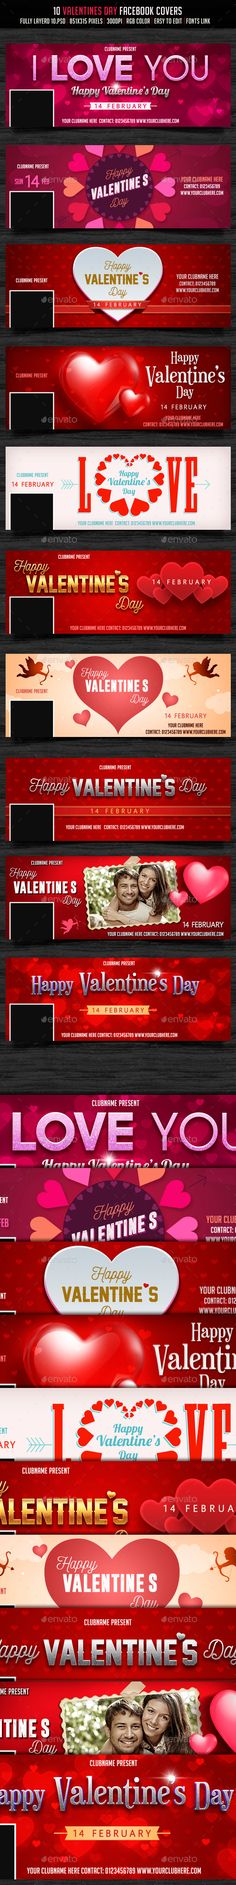 Valentines Day Facebook Cover Template PSD #design Download: http://graphicriver.net/item/valentines-day-facebook-cover/14377843?ref=ksioks